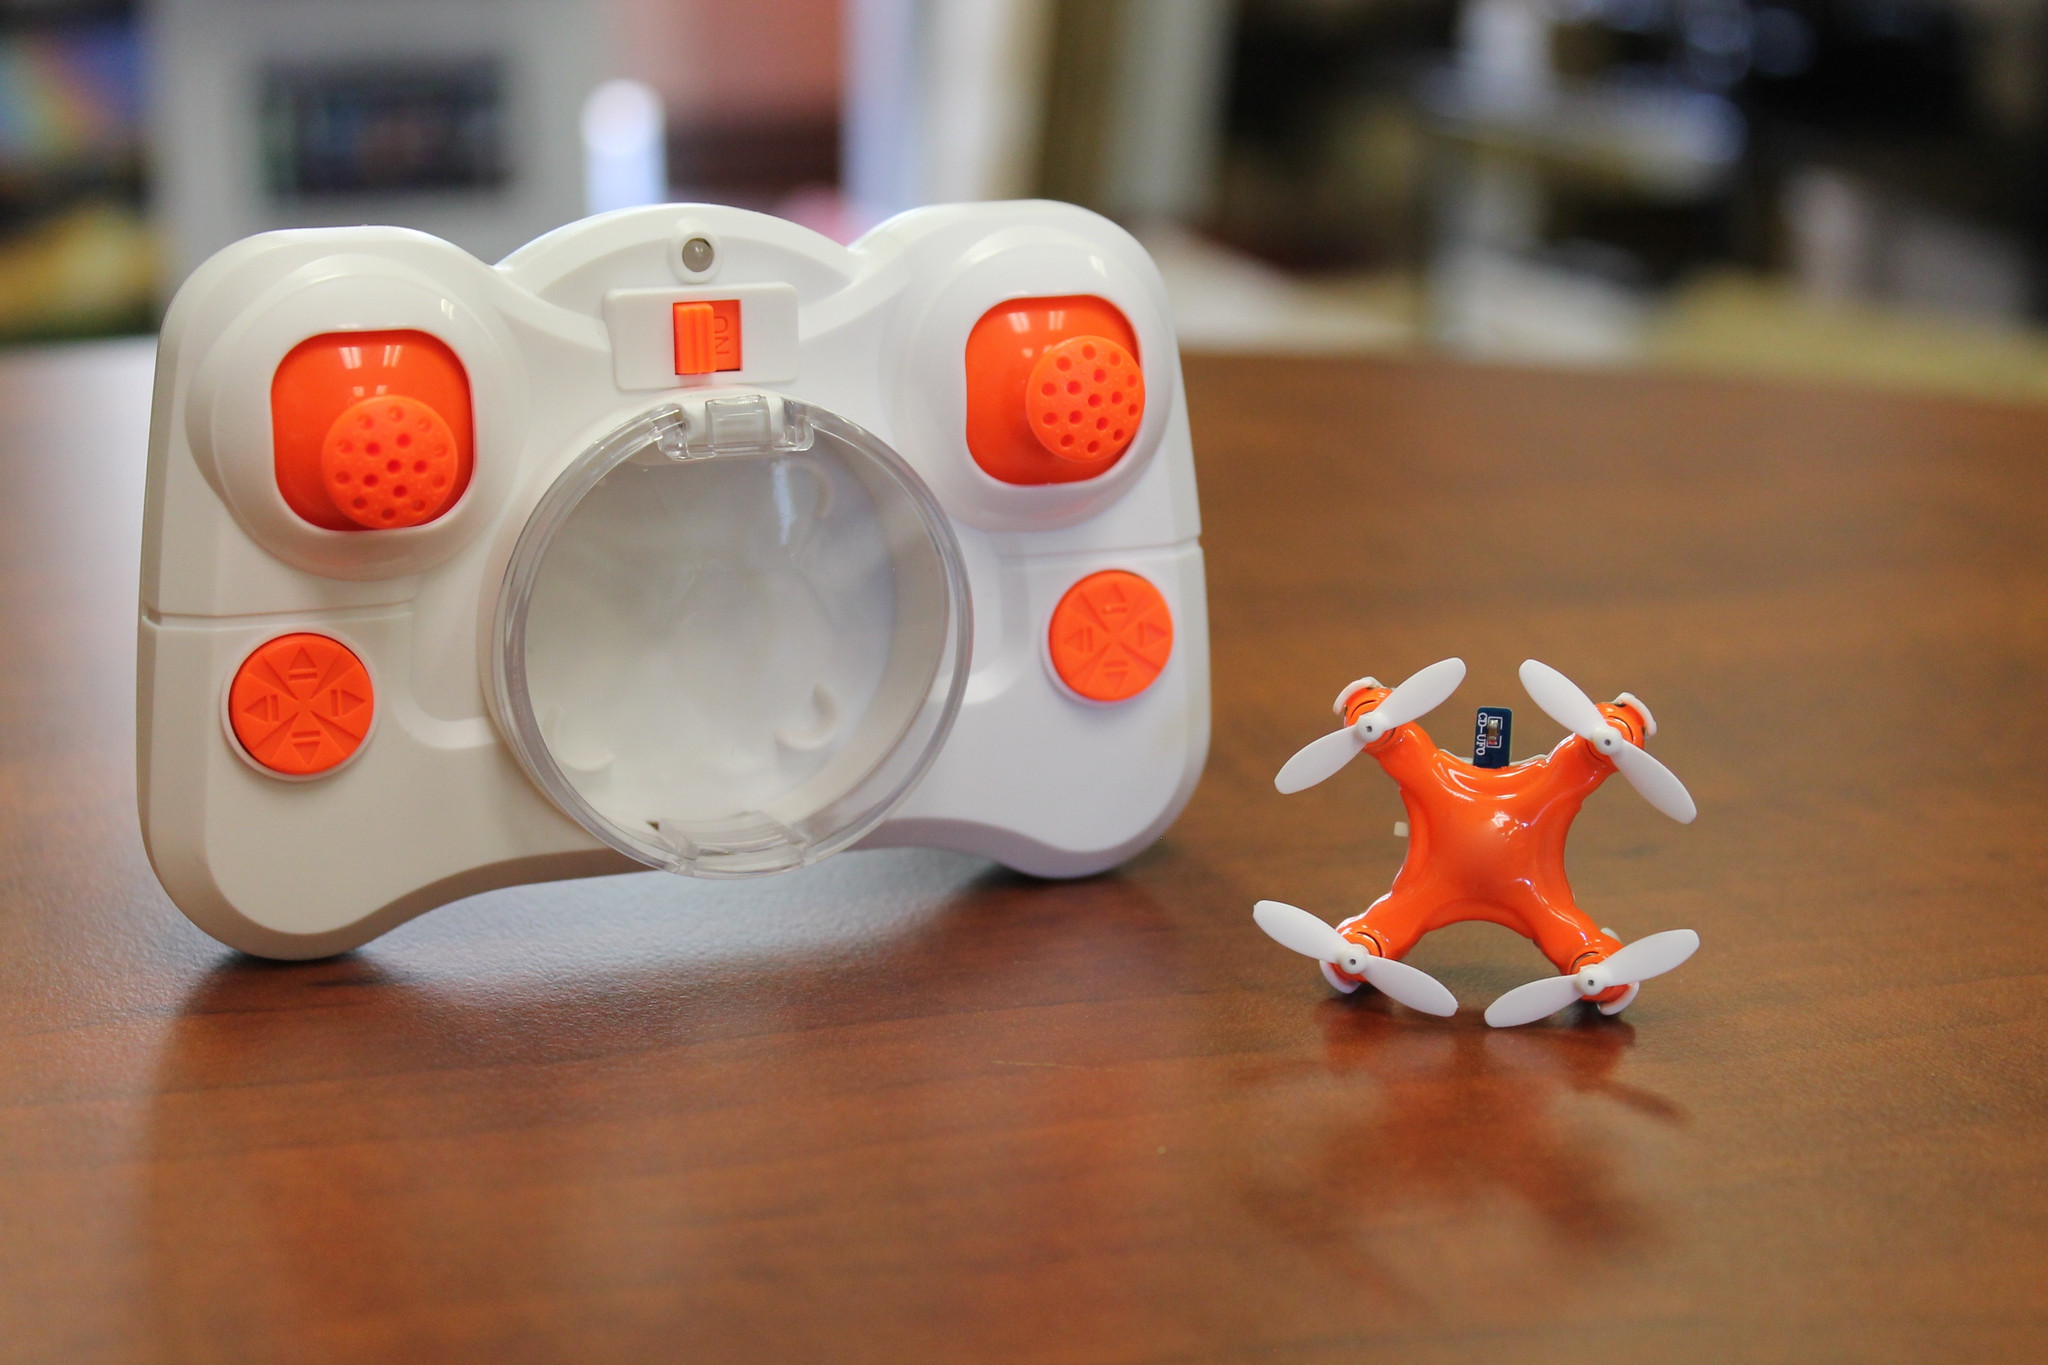 Axis Drones' Aerius quadcopter